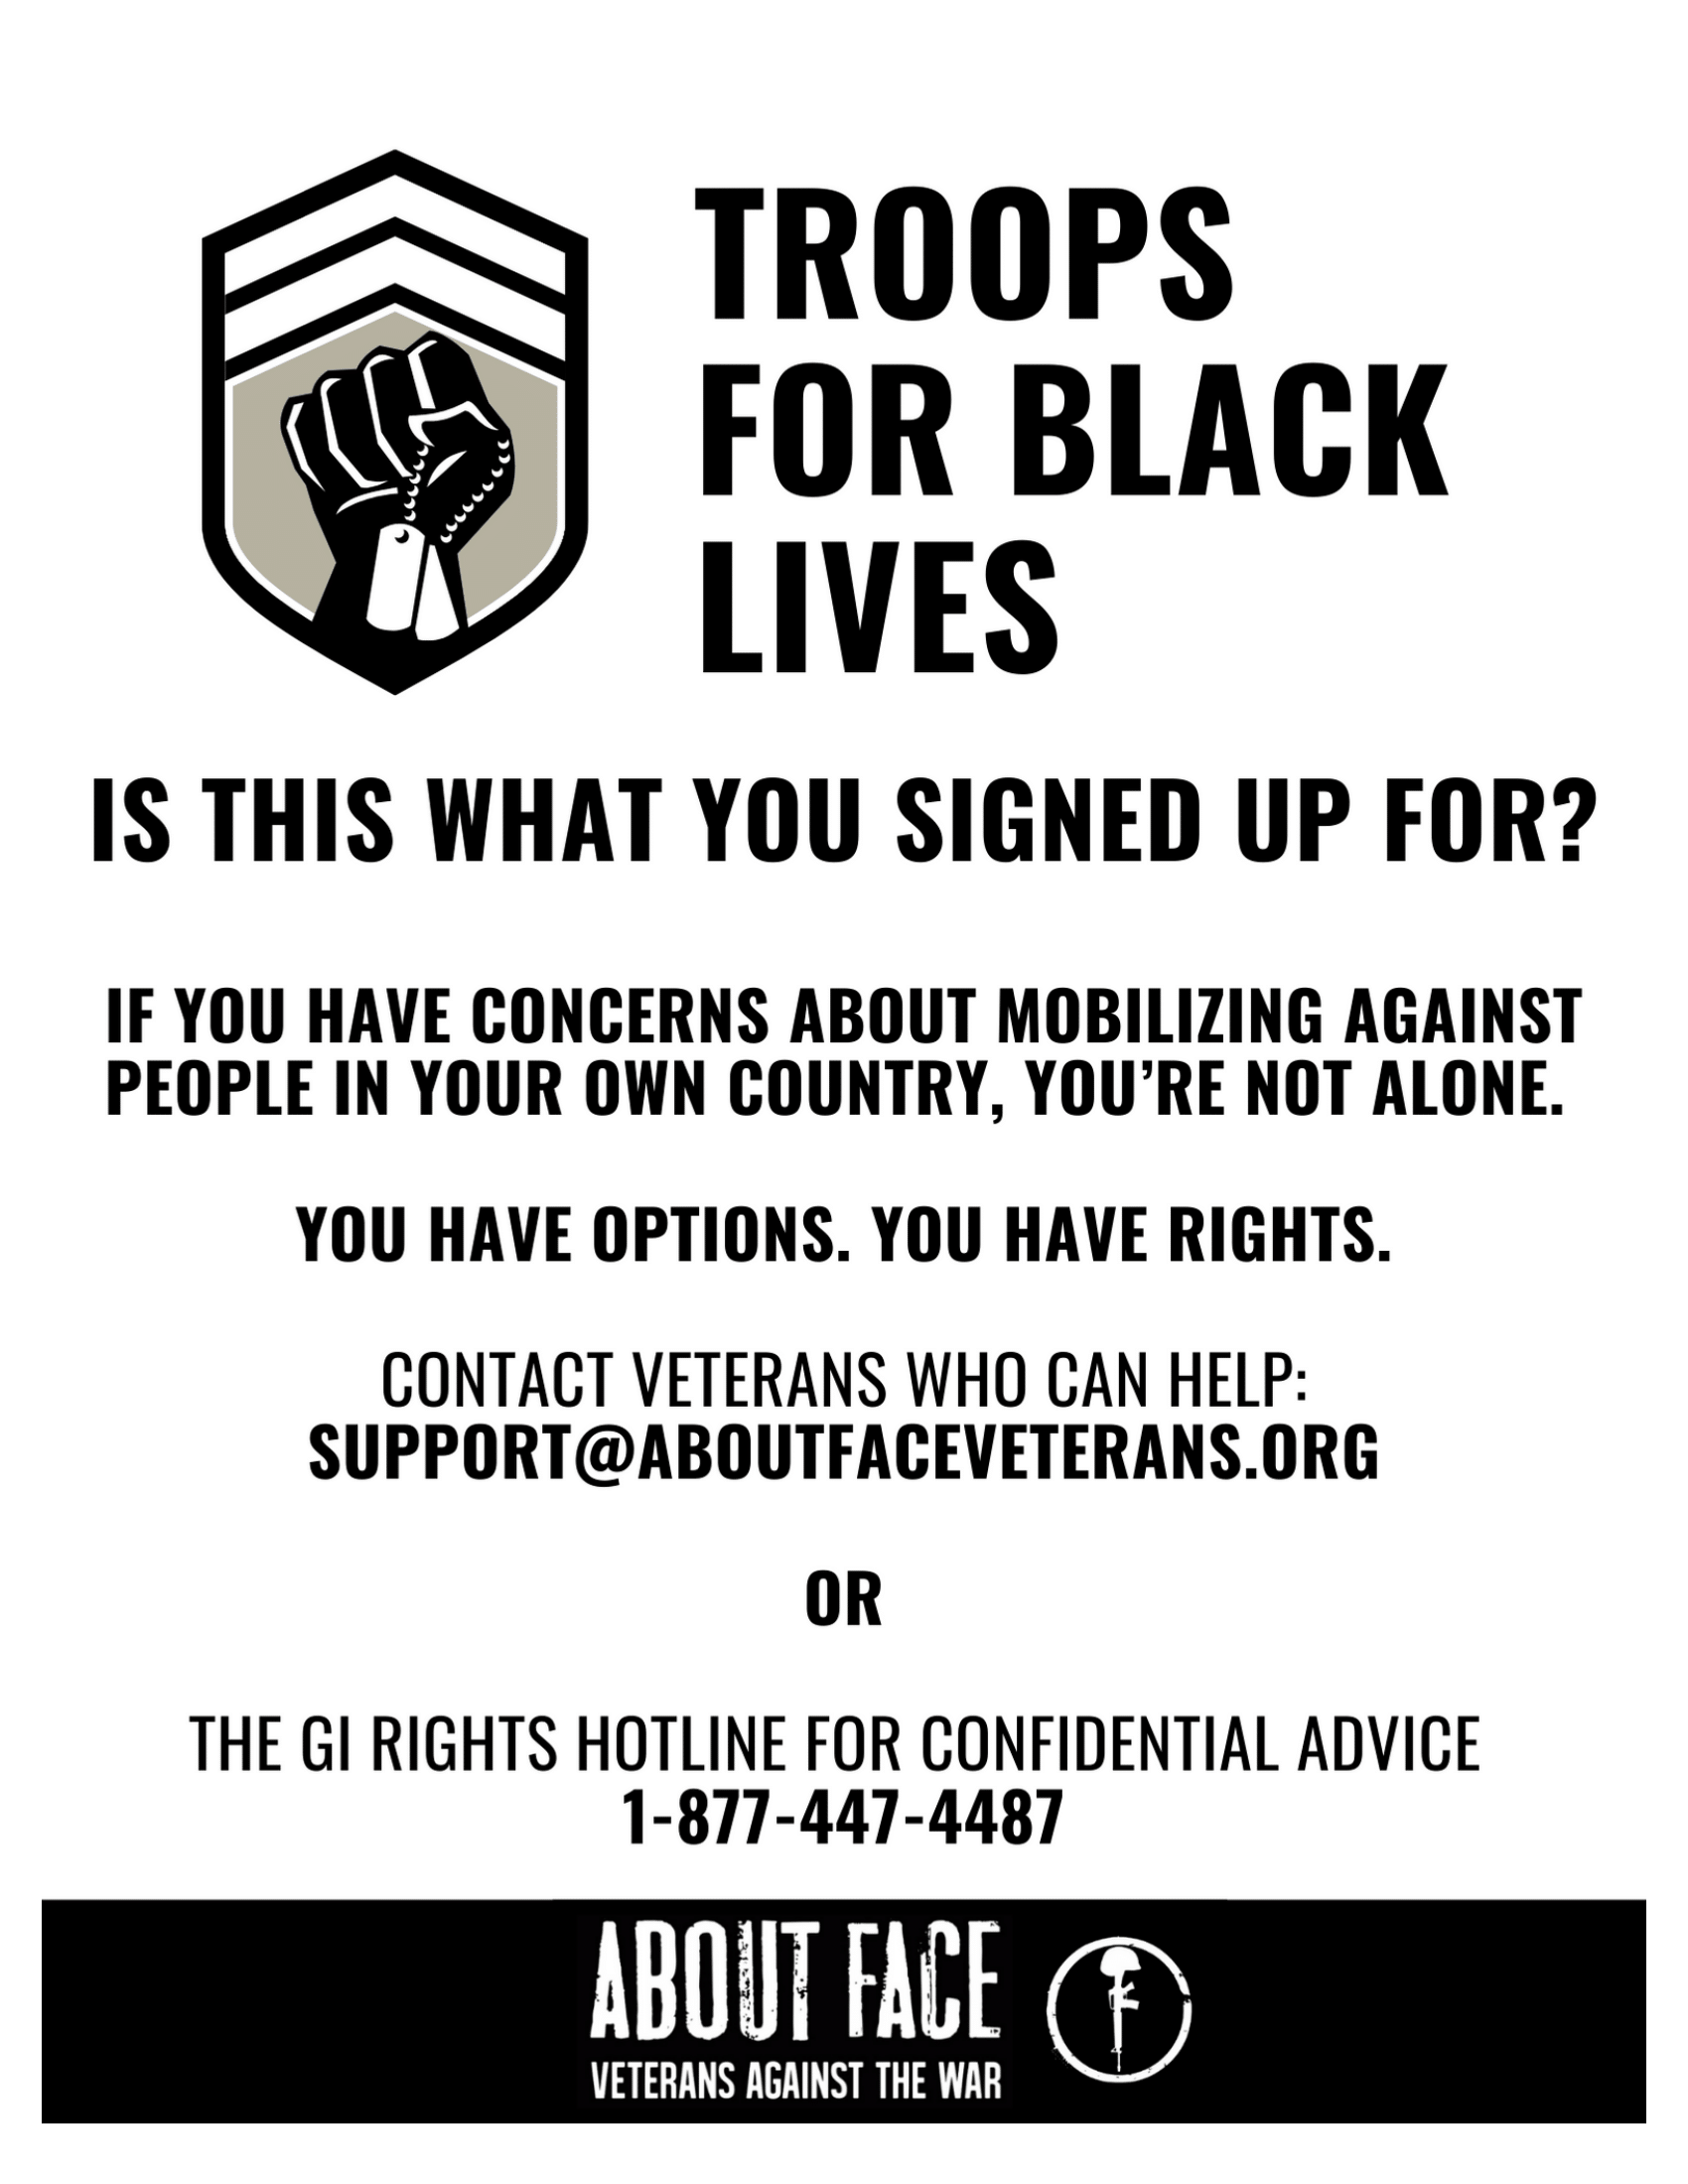 Troops For Black Lives - Is this what you signed up for?